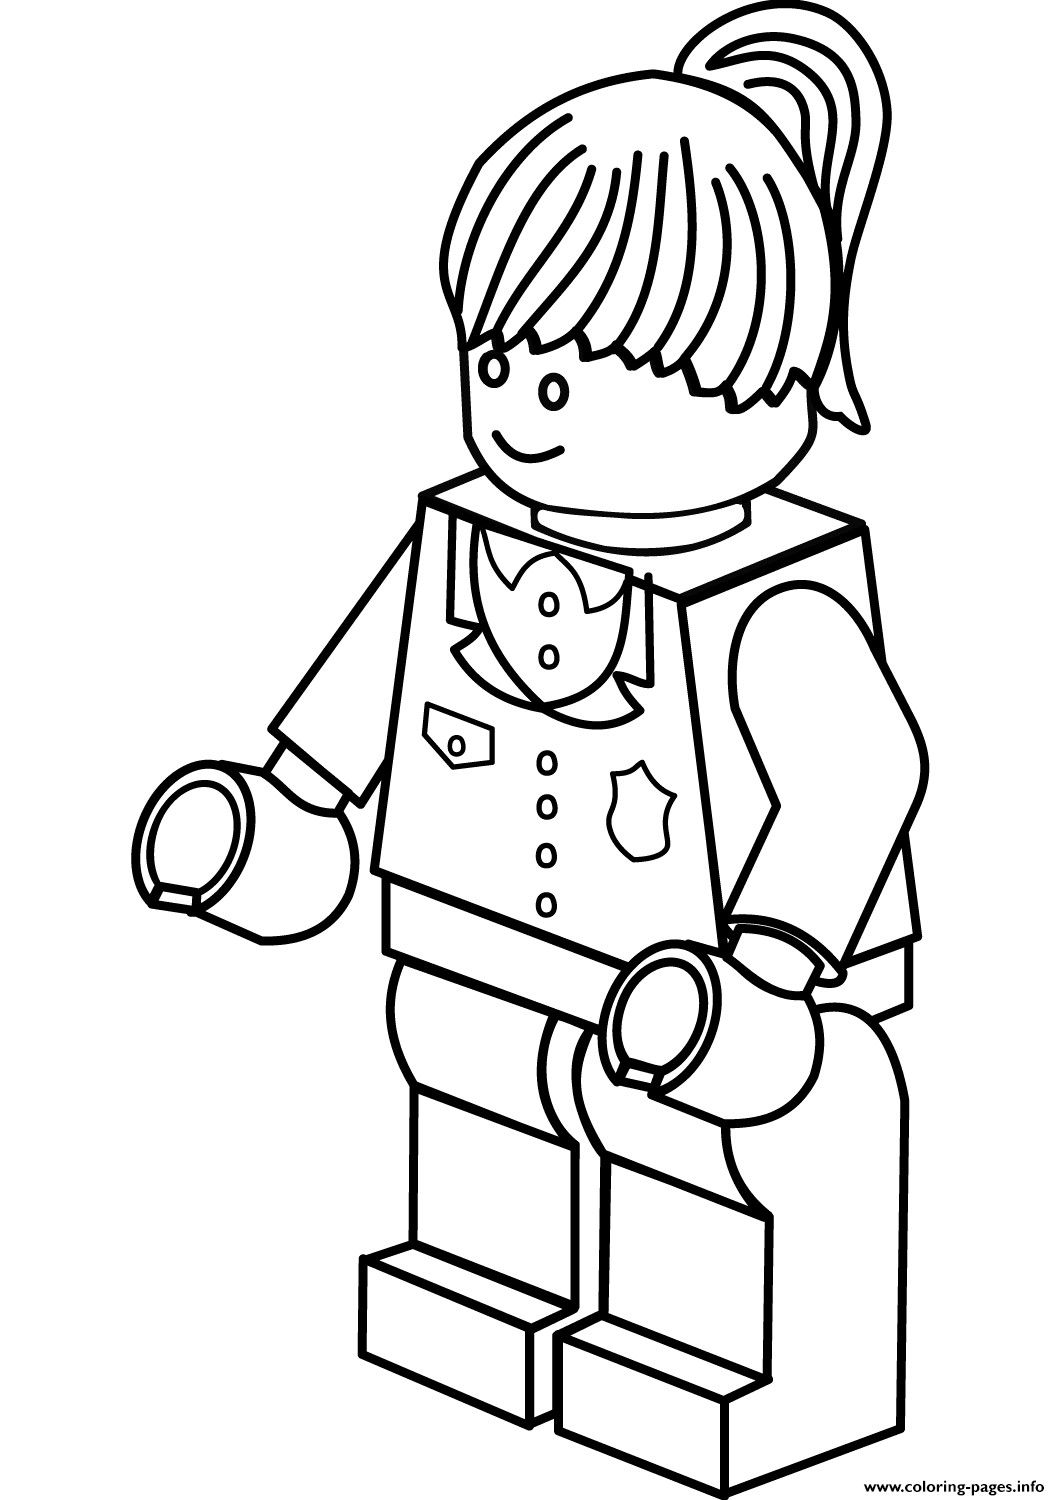 Printable Lego Coloring Sheets For Girls  Lego Police Woman Coloring Pages Printable